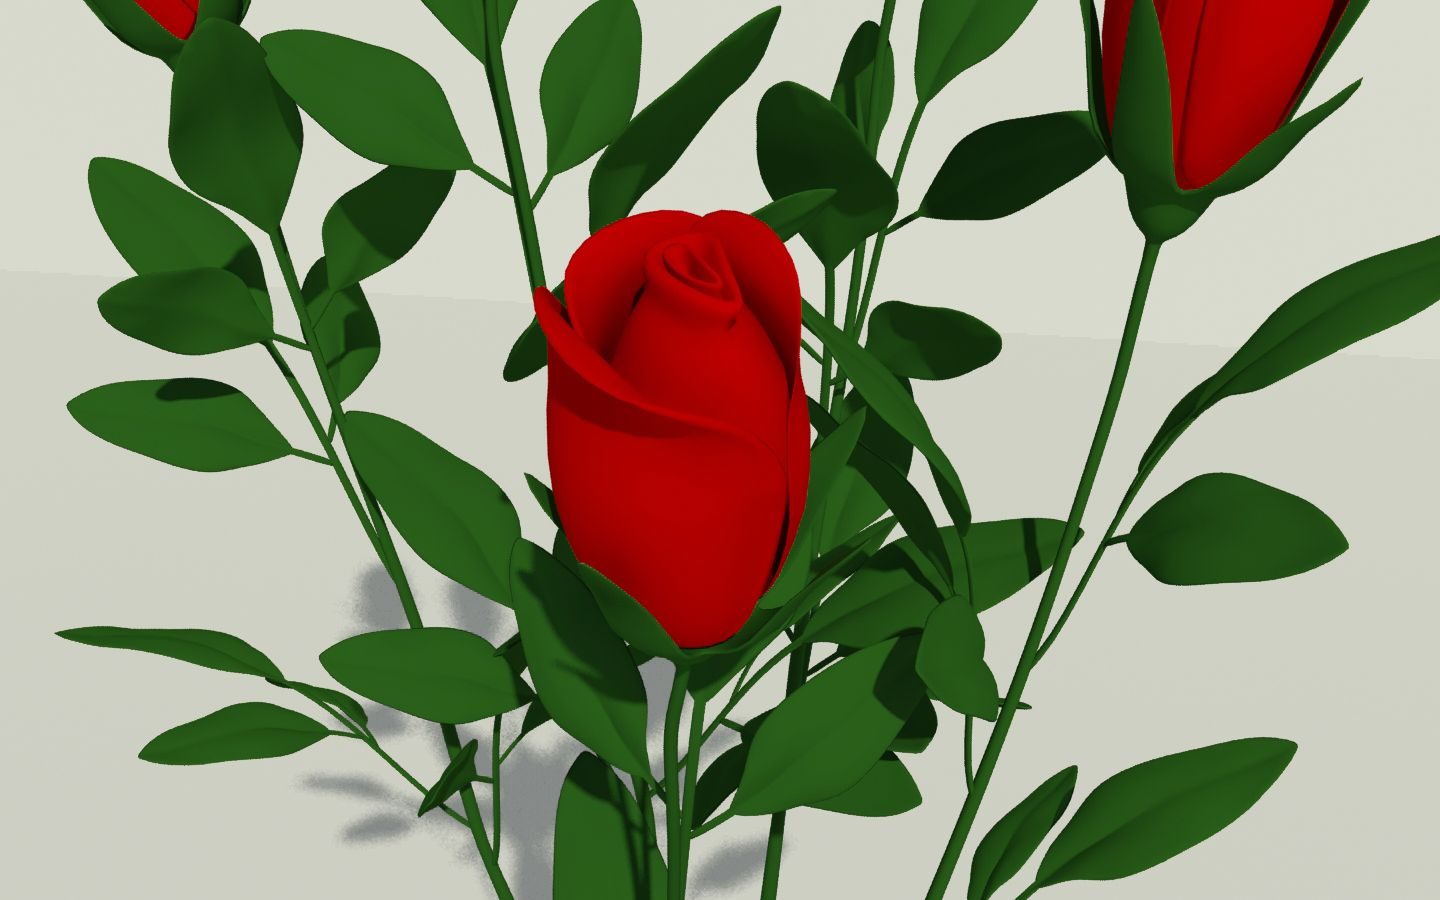 The beautiful rose picture by ancient for flower designs 3d the beautiful rose izmirmasajfo